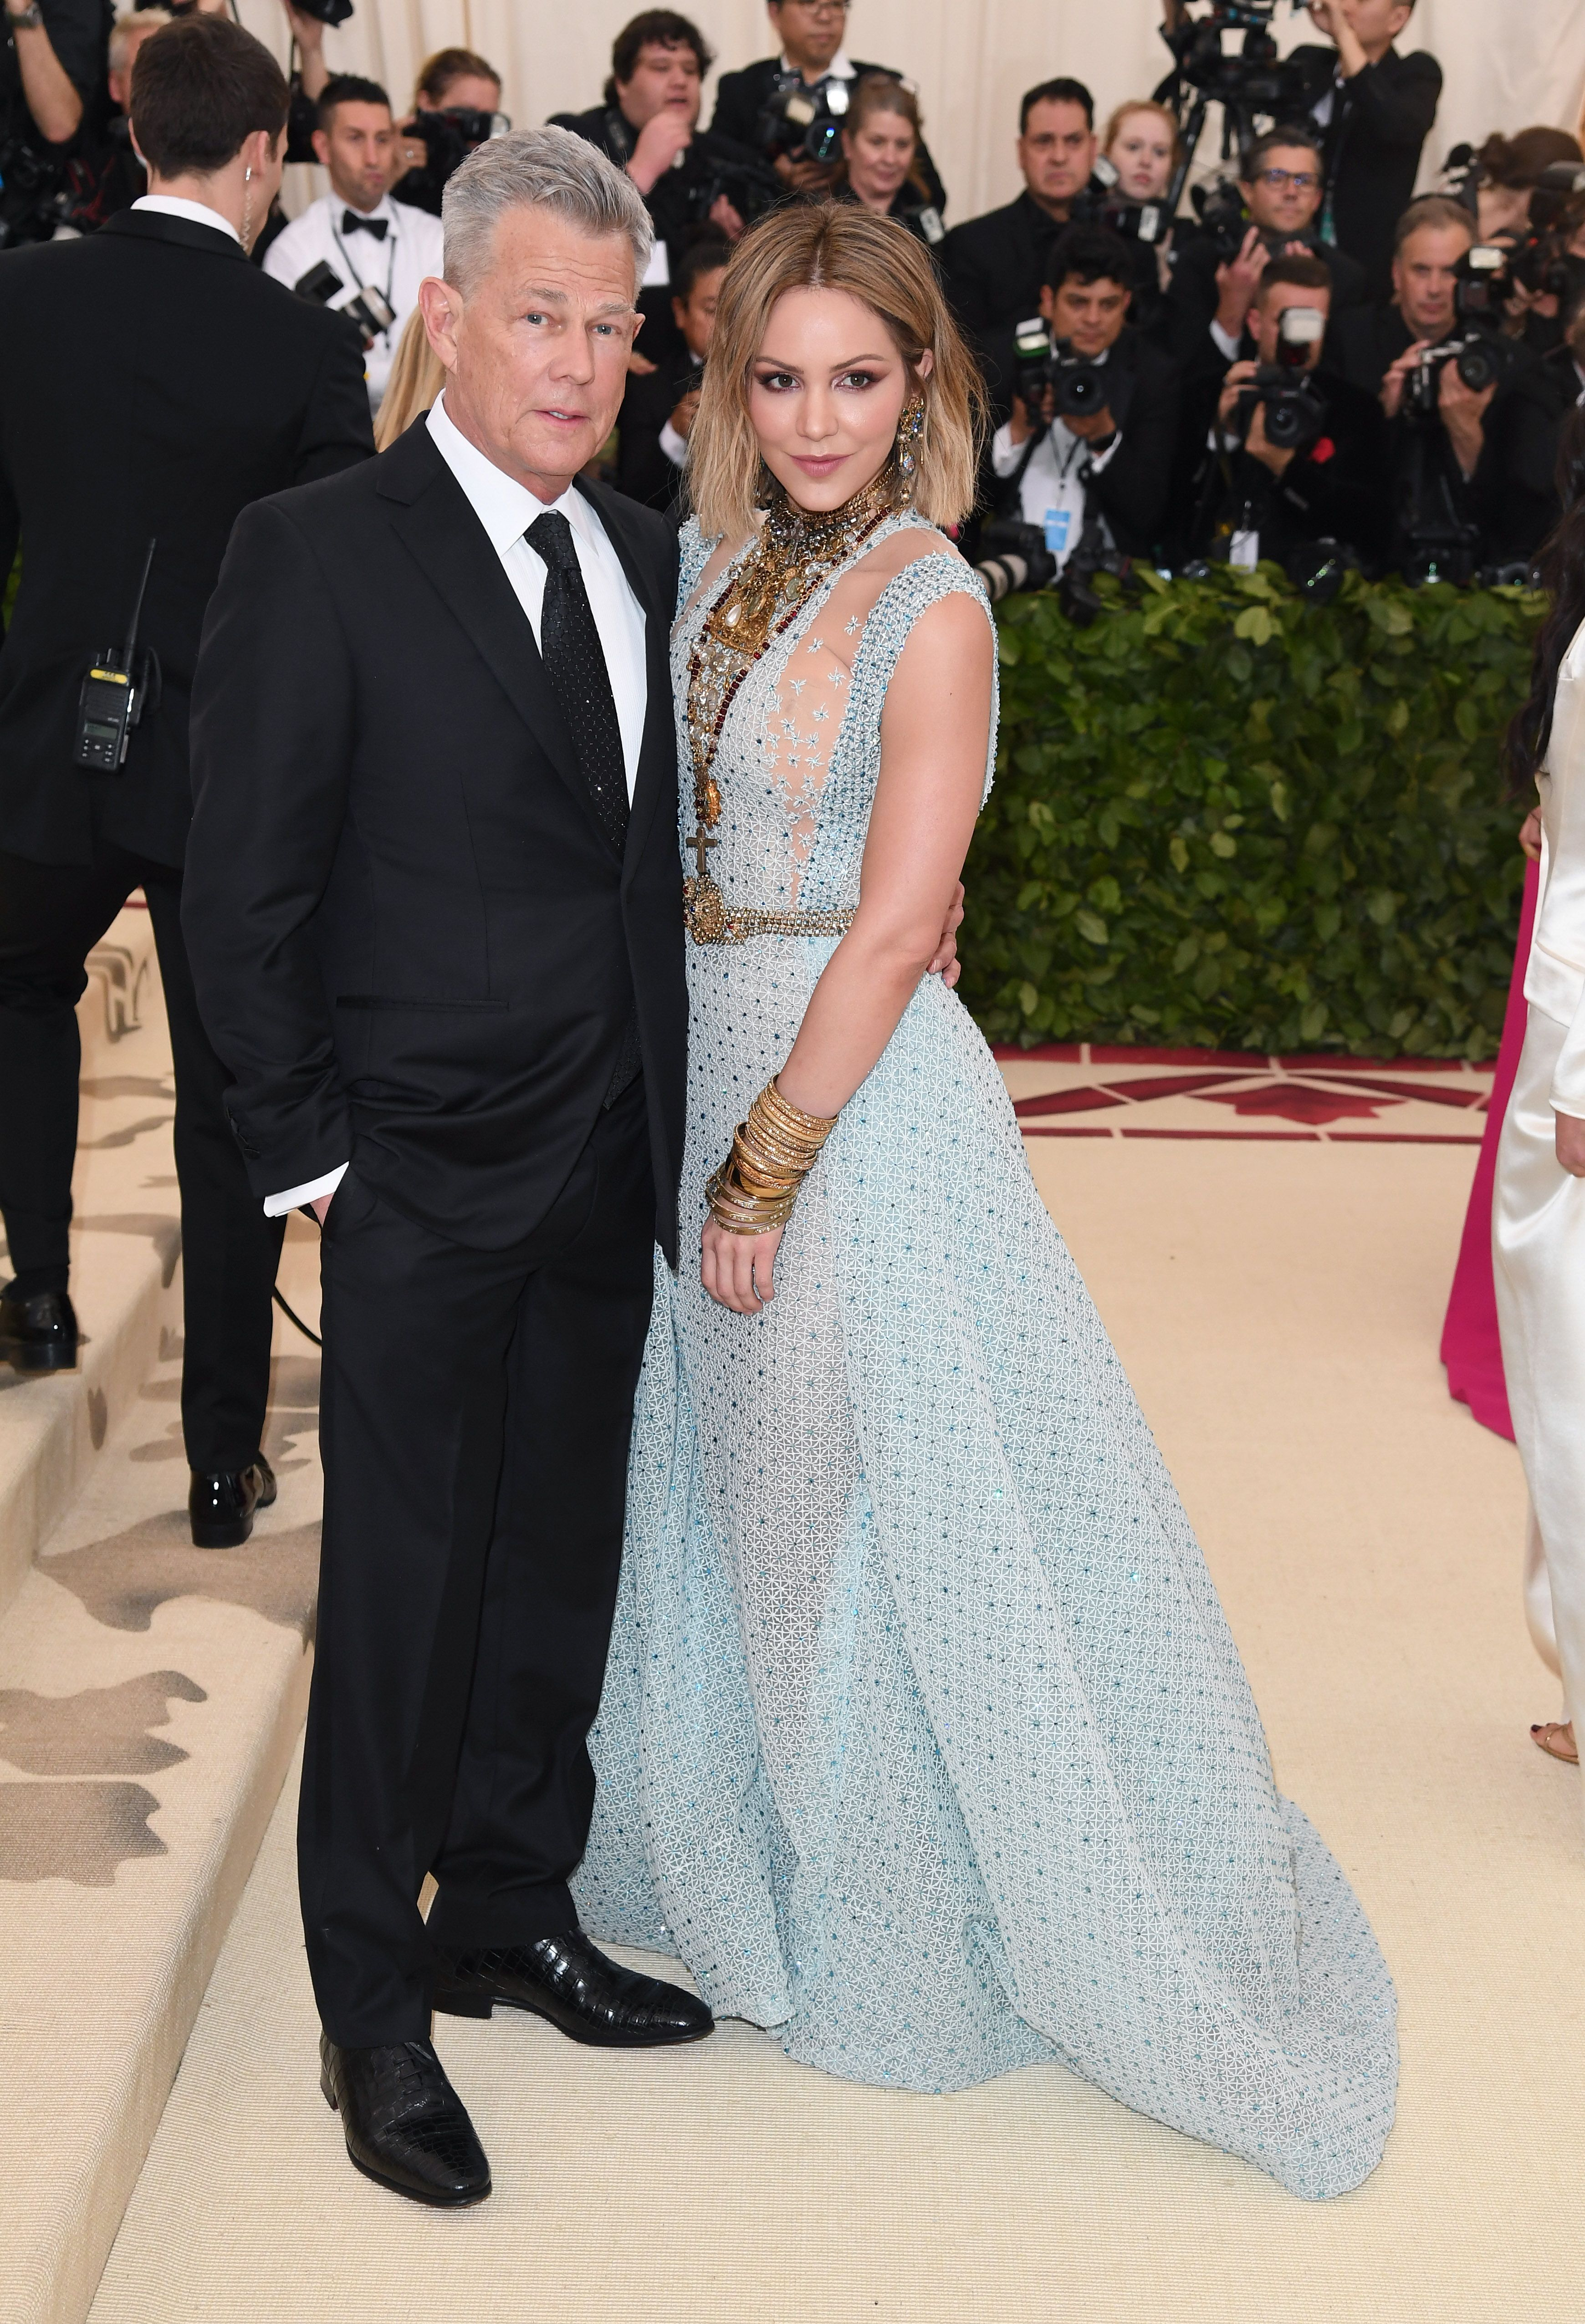 David Foster and Katharine McPhee during the Heavenly Bodies: Fashion & The Catholic Imagination Costume Institute Gala at Metropolitan Museum of Art on May 7, 2018 in New York City. | Source: Getty Images